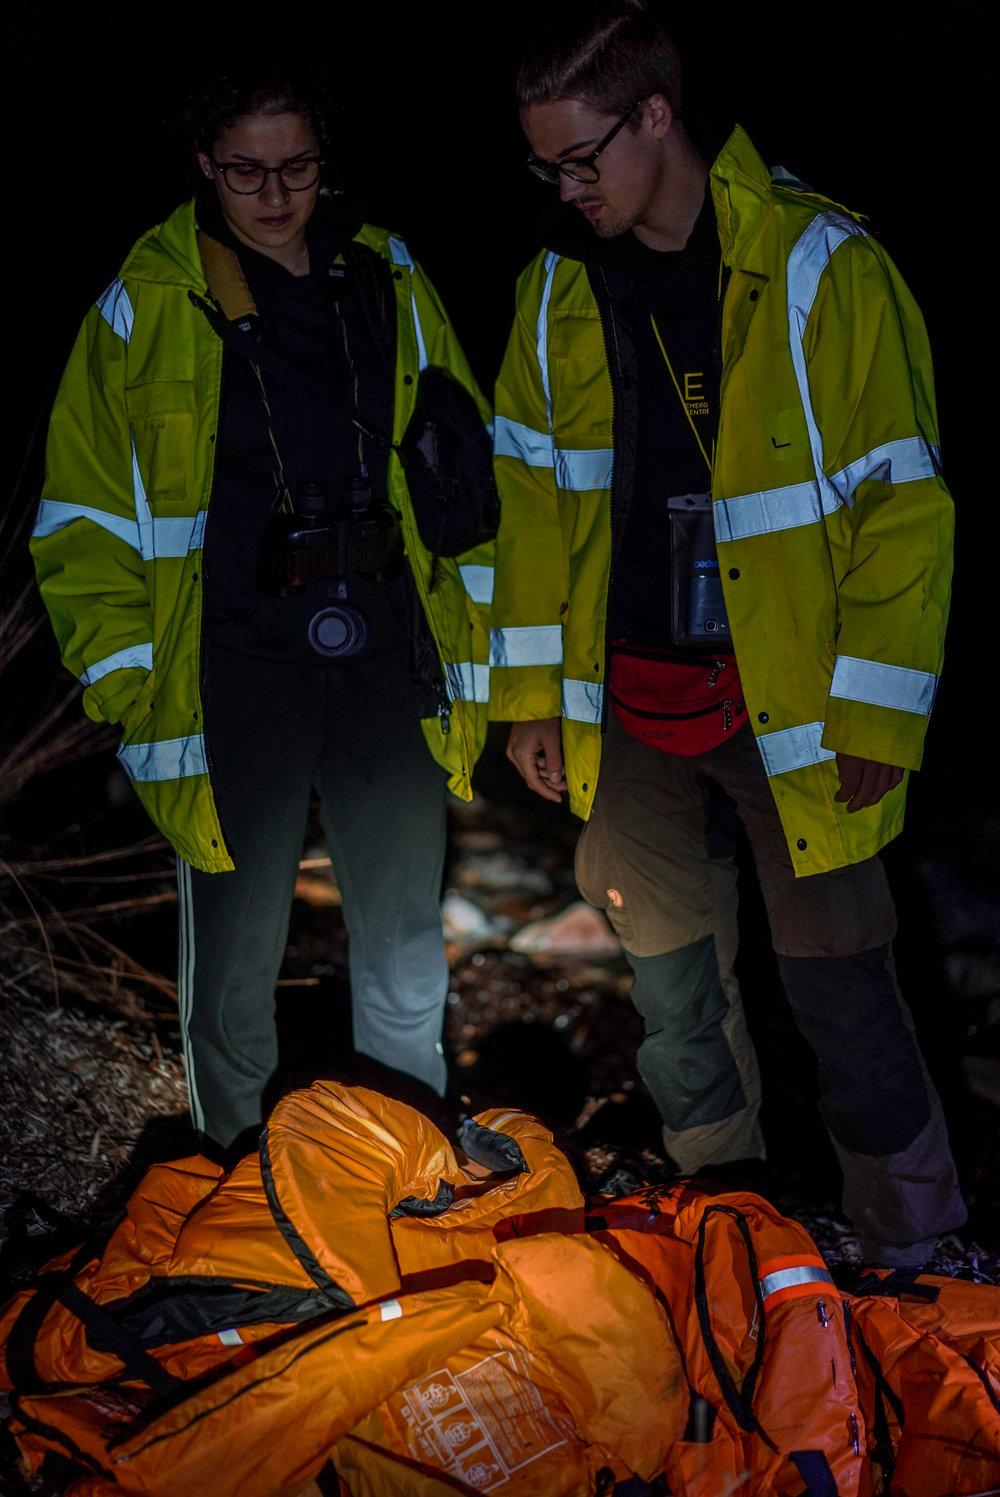 While watching the shoreline, Sarah discovers discarded lifejackets from a boat she rescued.